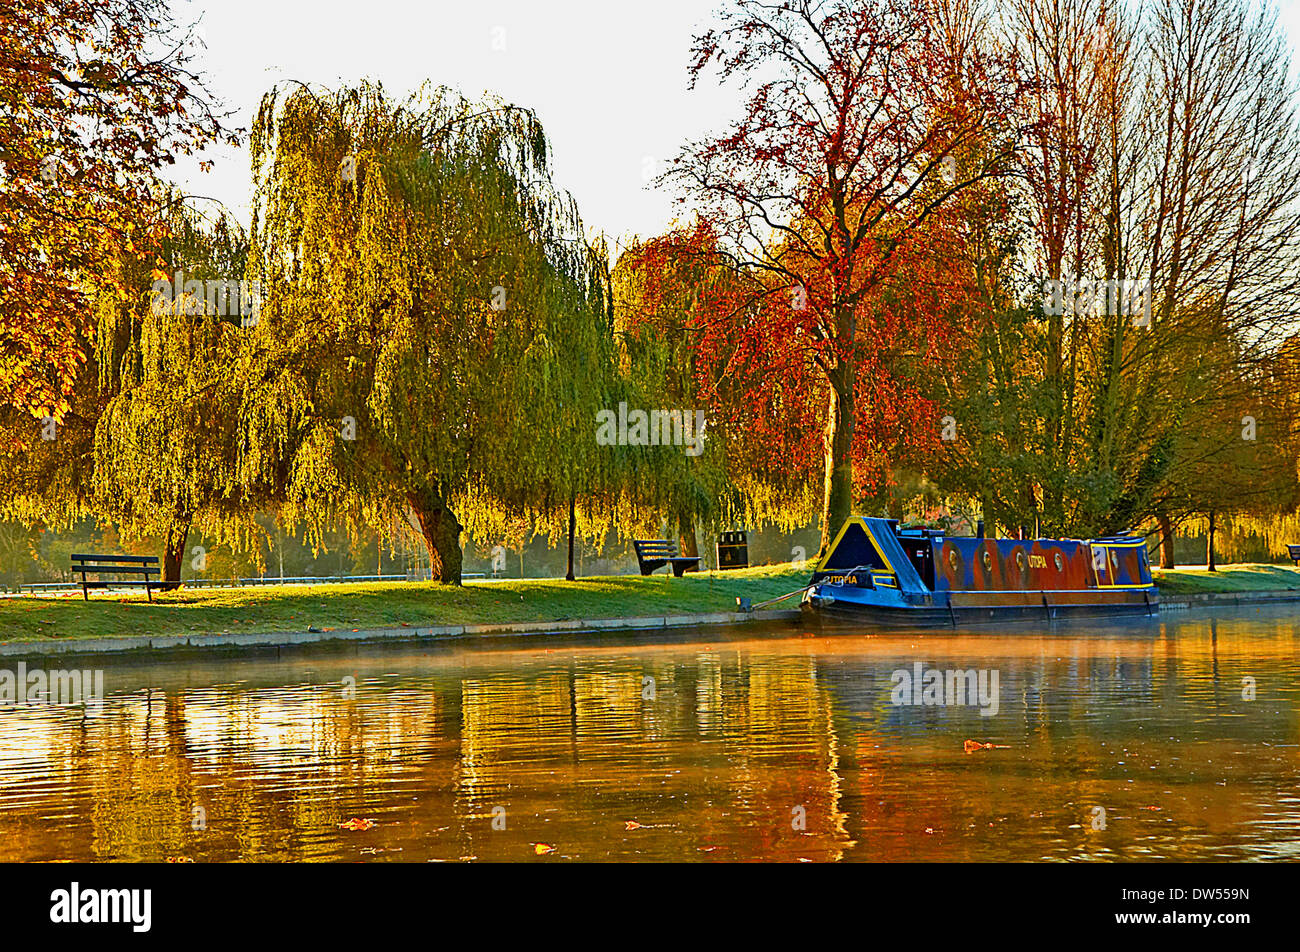 An early morning autumnal river scene with a lone narrowboat moored to the banks of the River Avon, in Stratford upon Avon, Warwickshire. - Stock Image